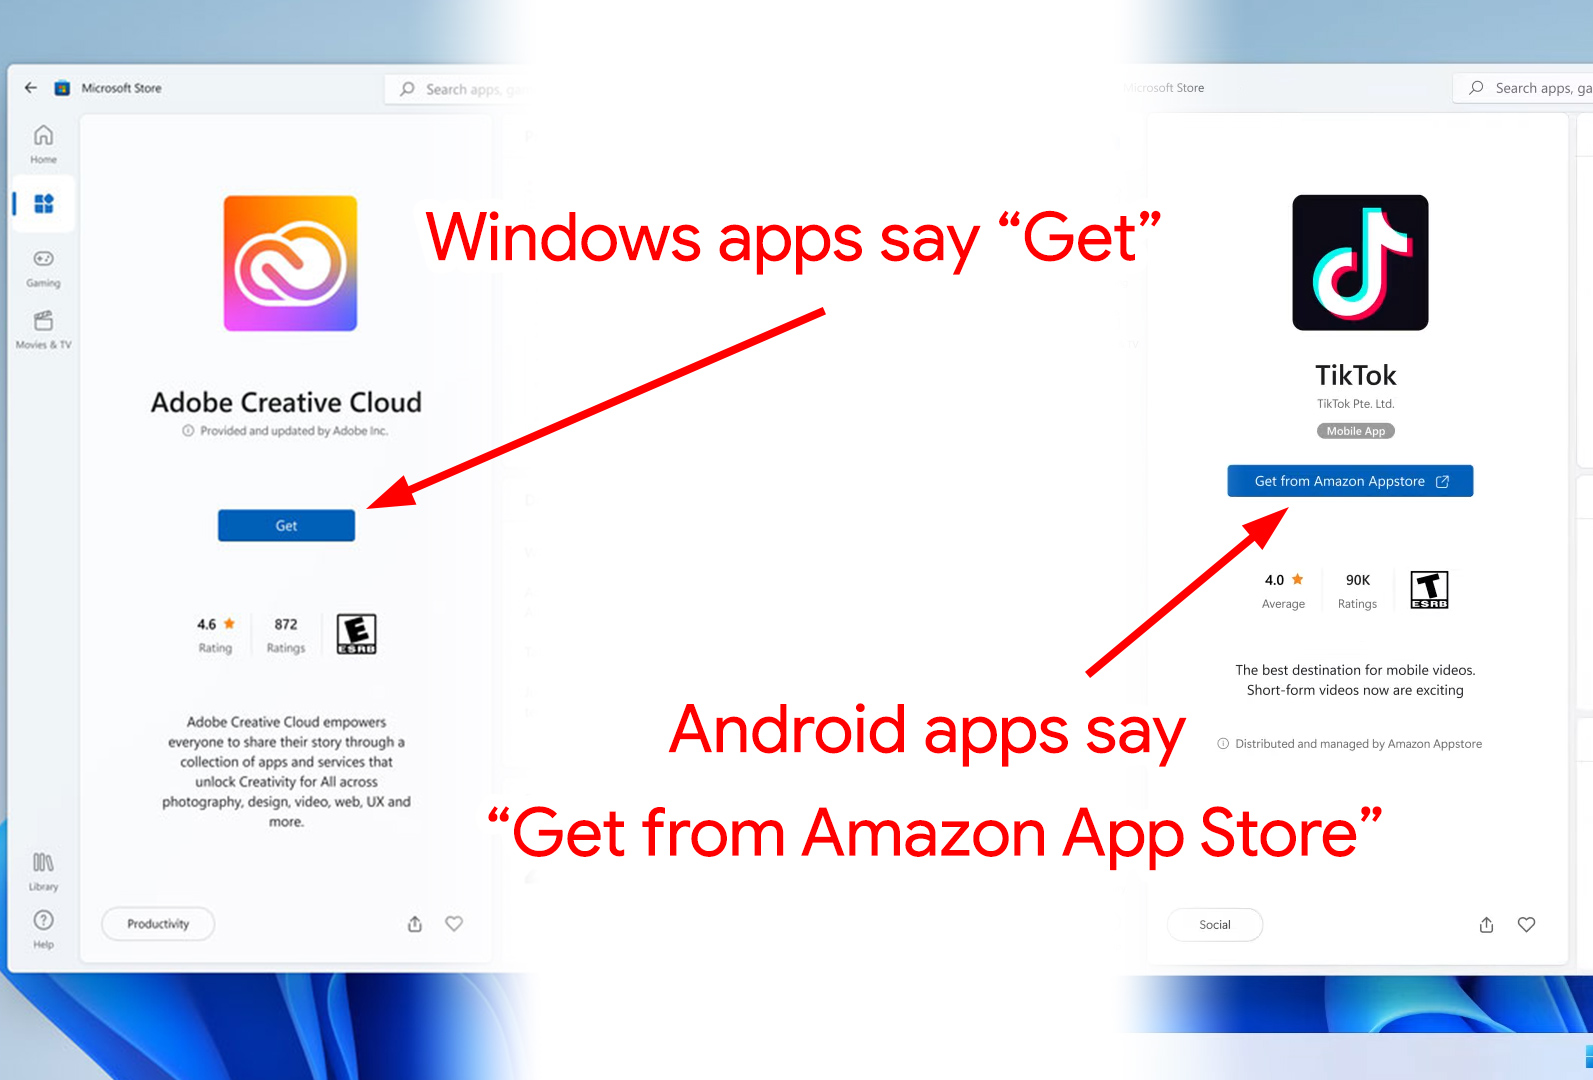 It looks like the Microsoft Store will list Android apps—but will kick you out to the Amazon App Store to install them.